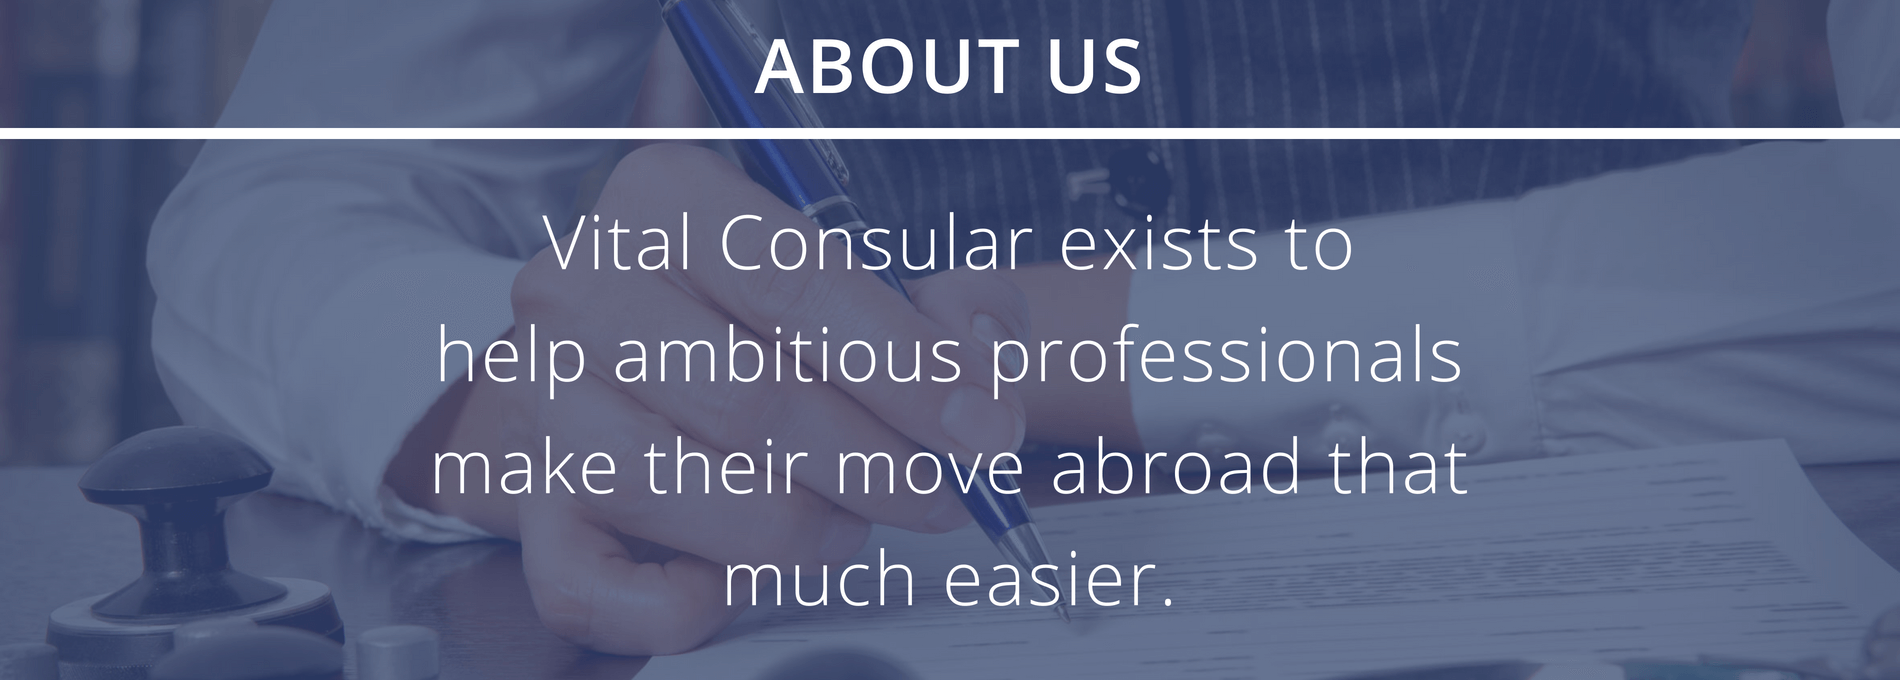 Vital Consular About Us